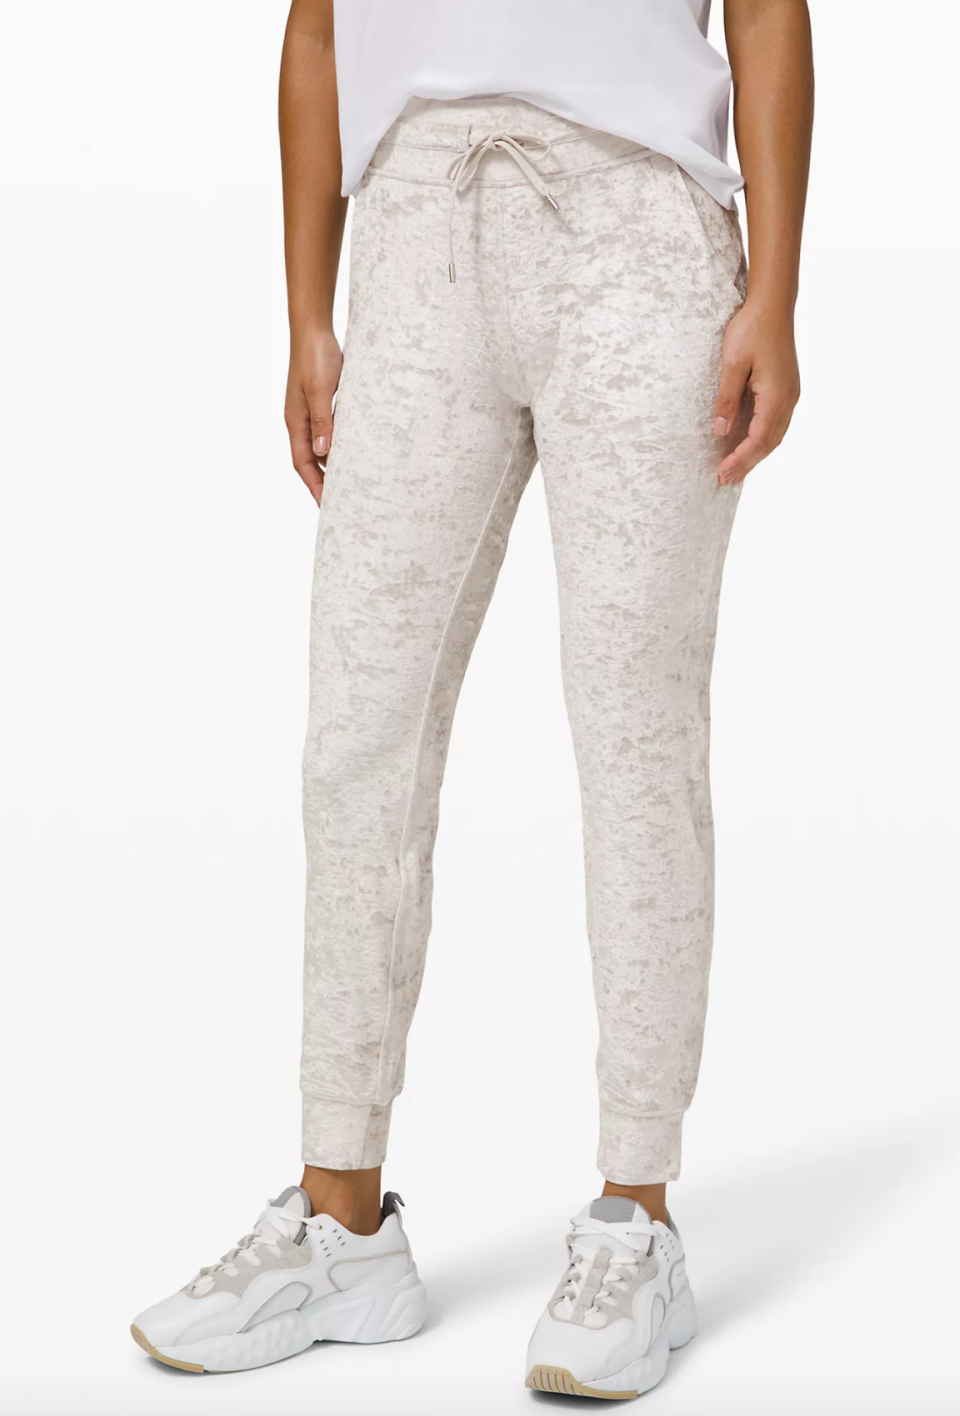 Ready to Crush Joggers - $59 (originally $138)